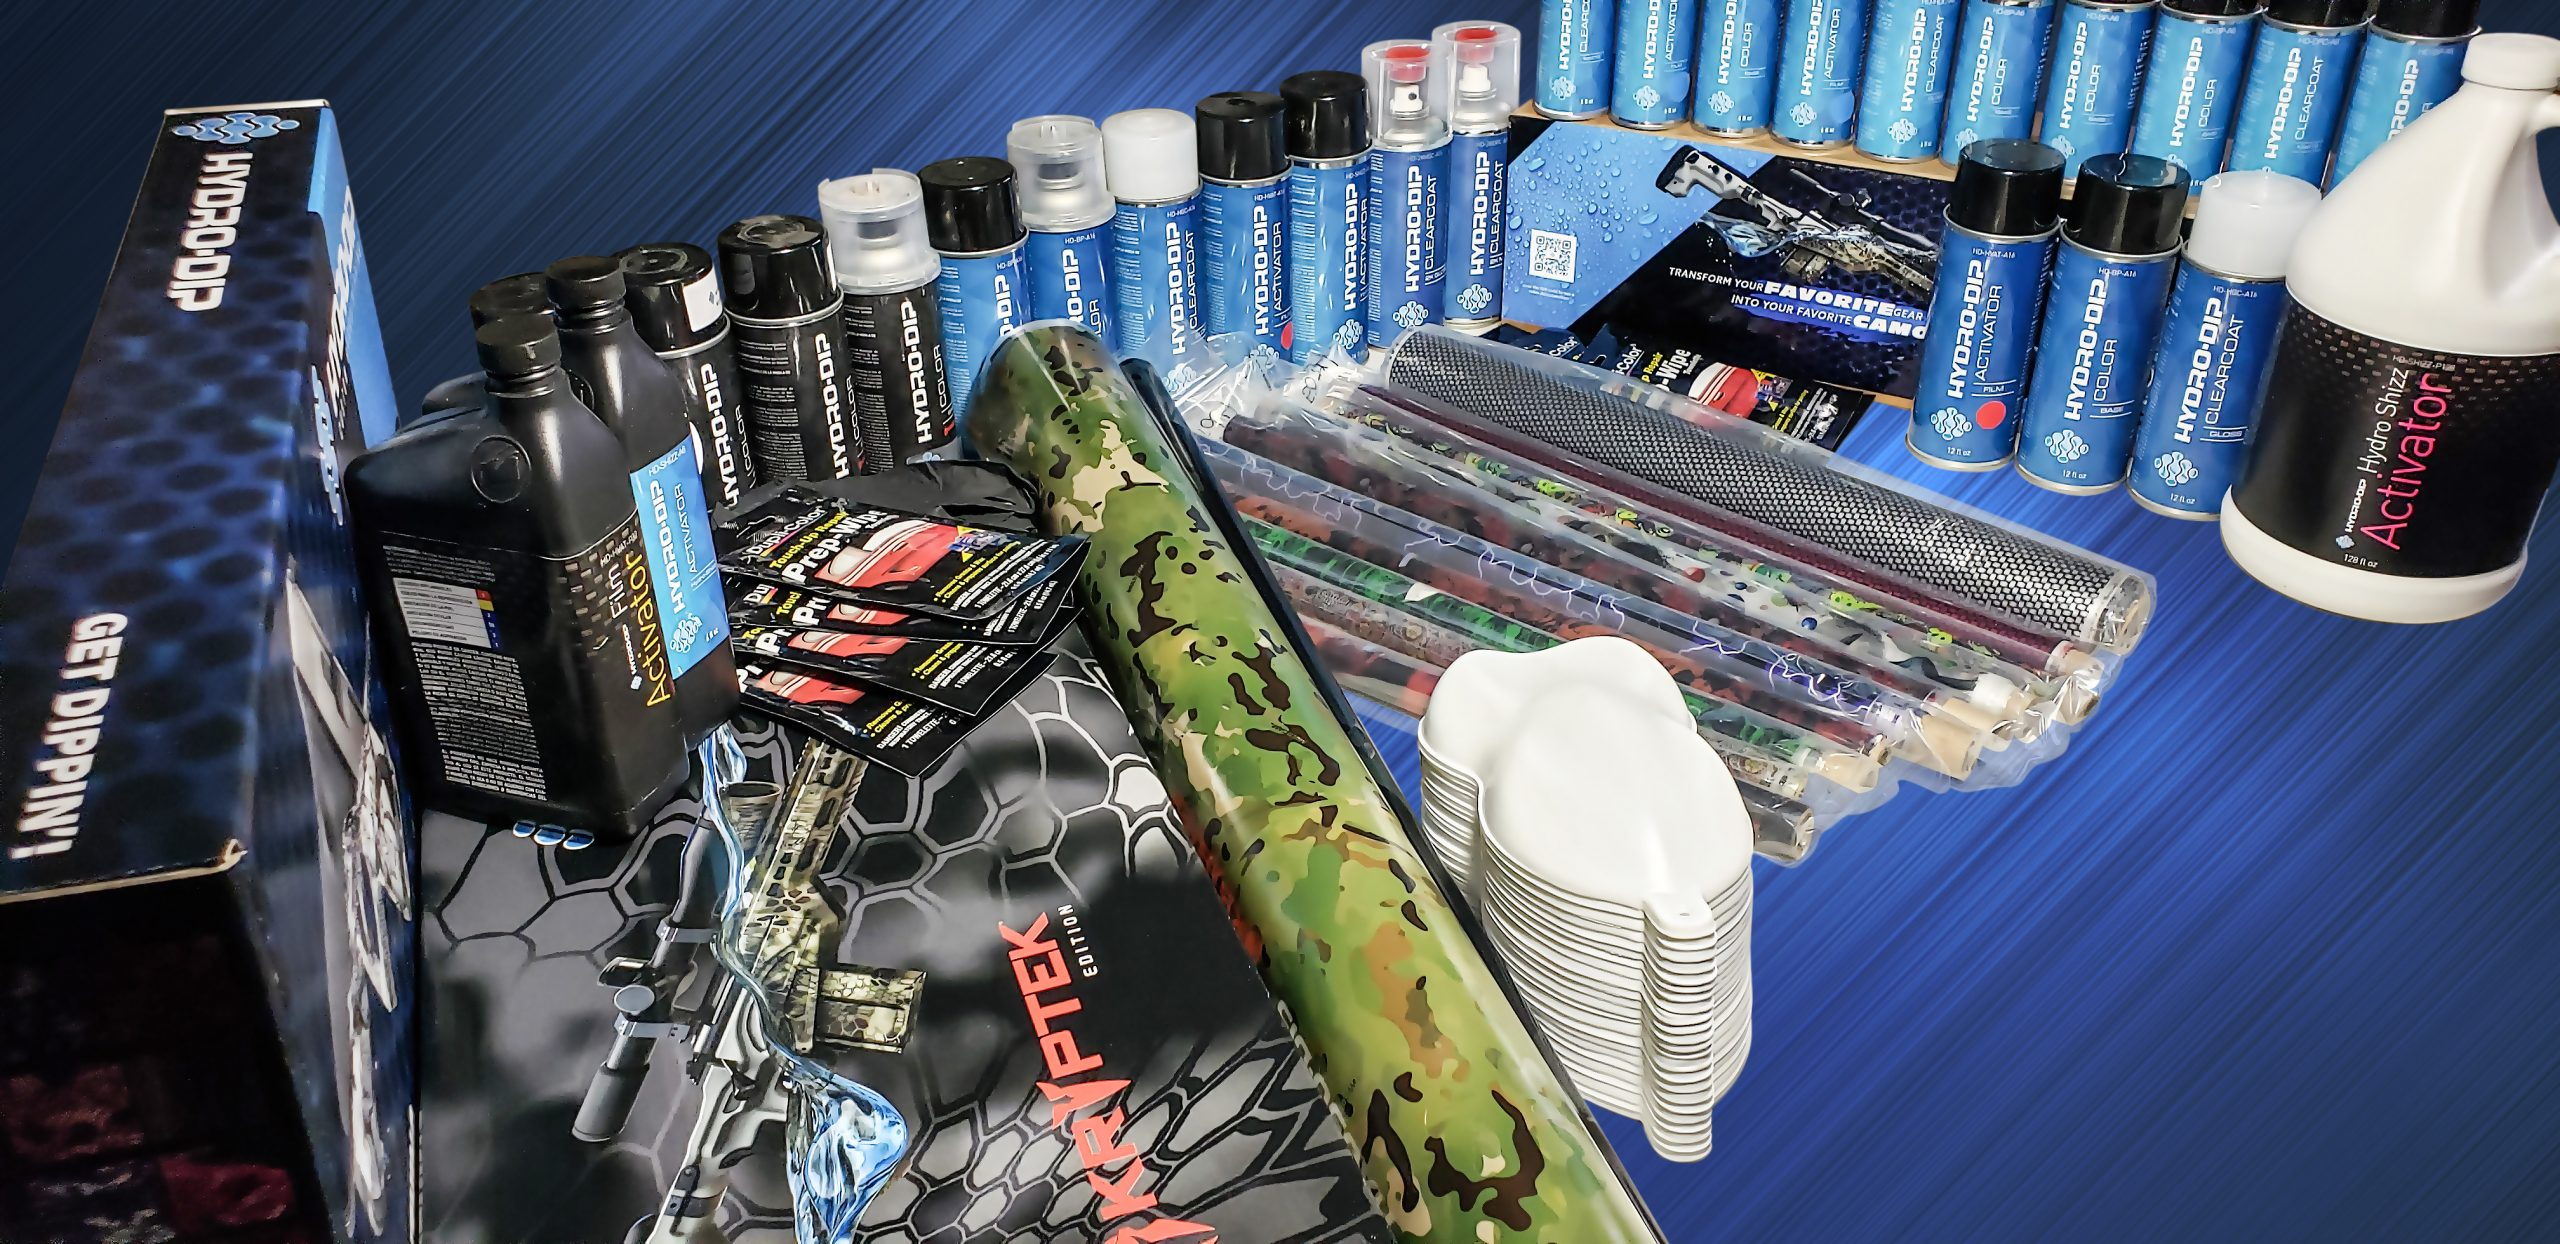 Hydro Dipping Supplies